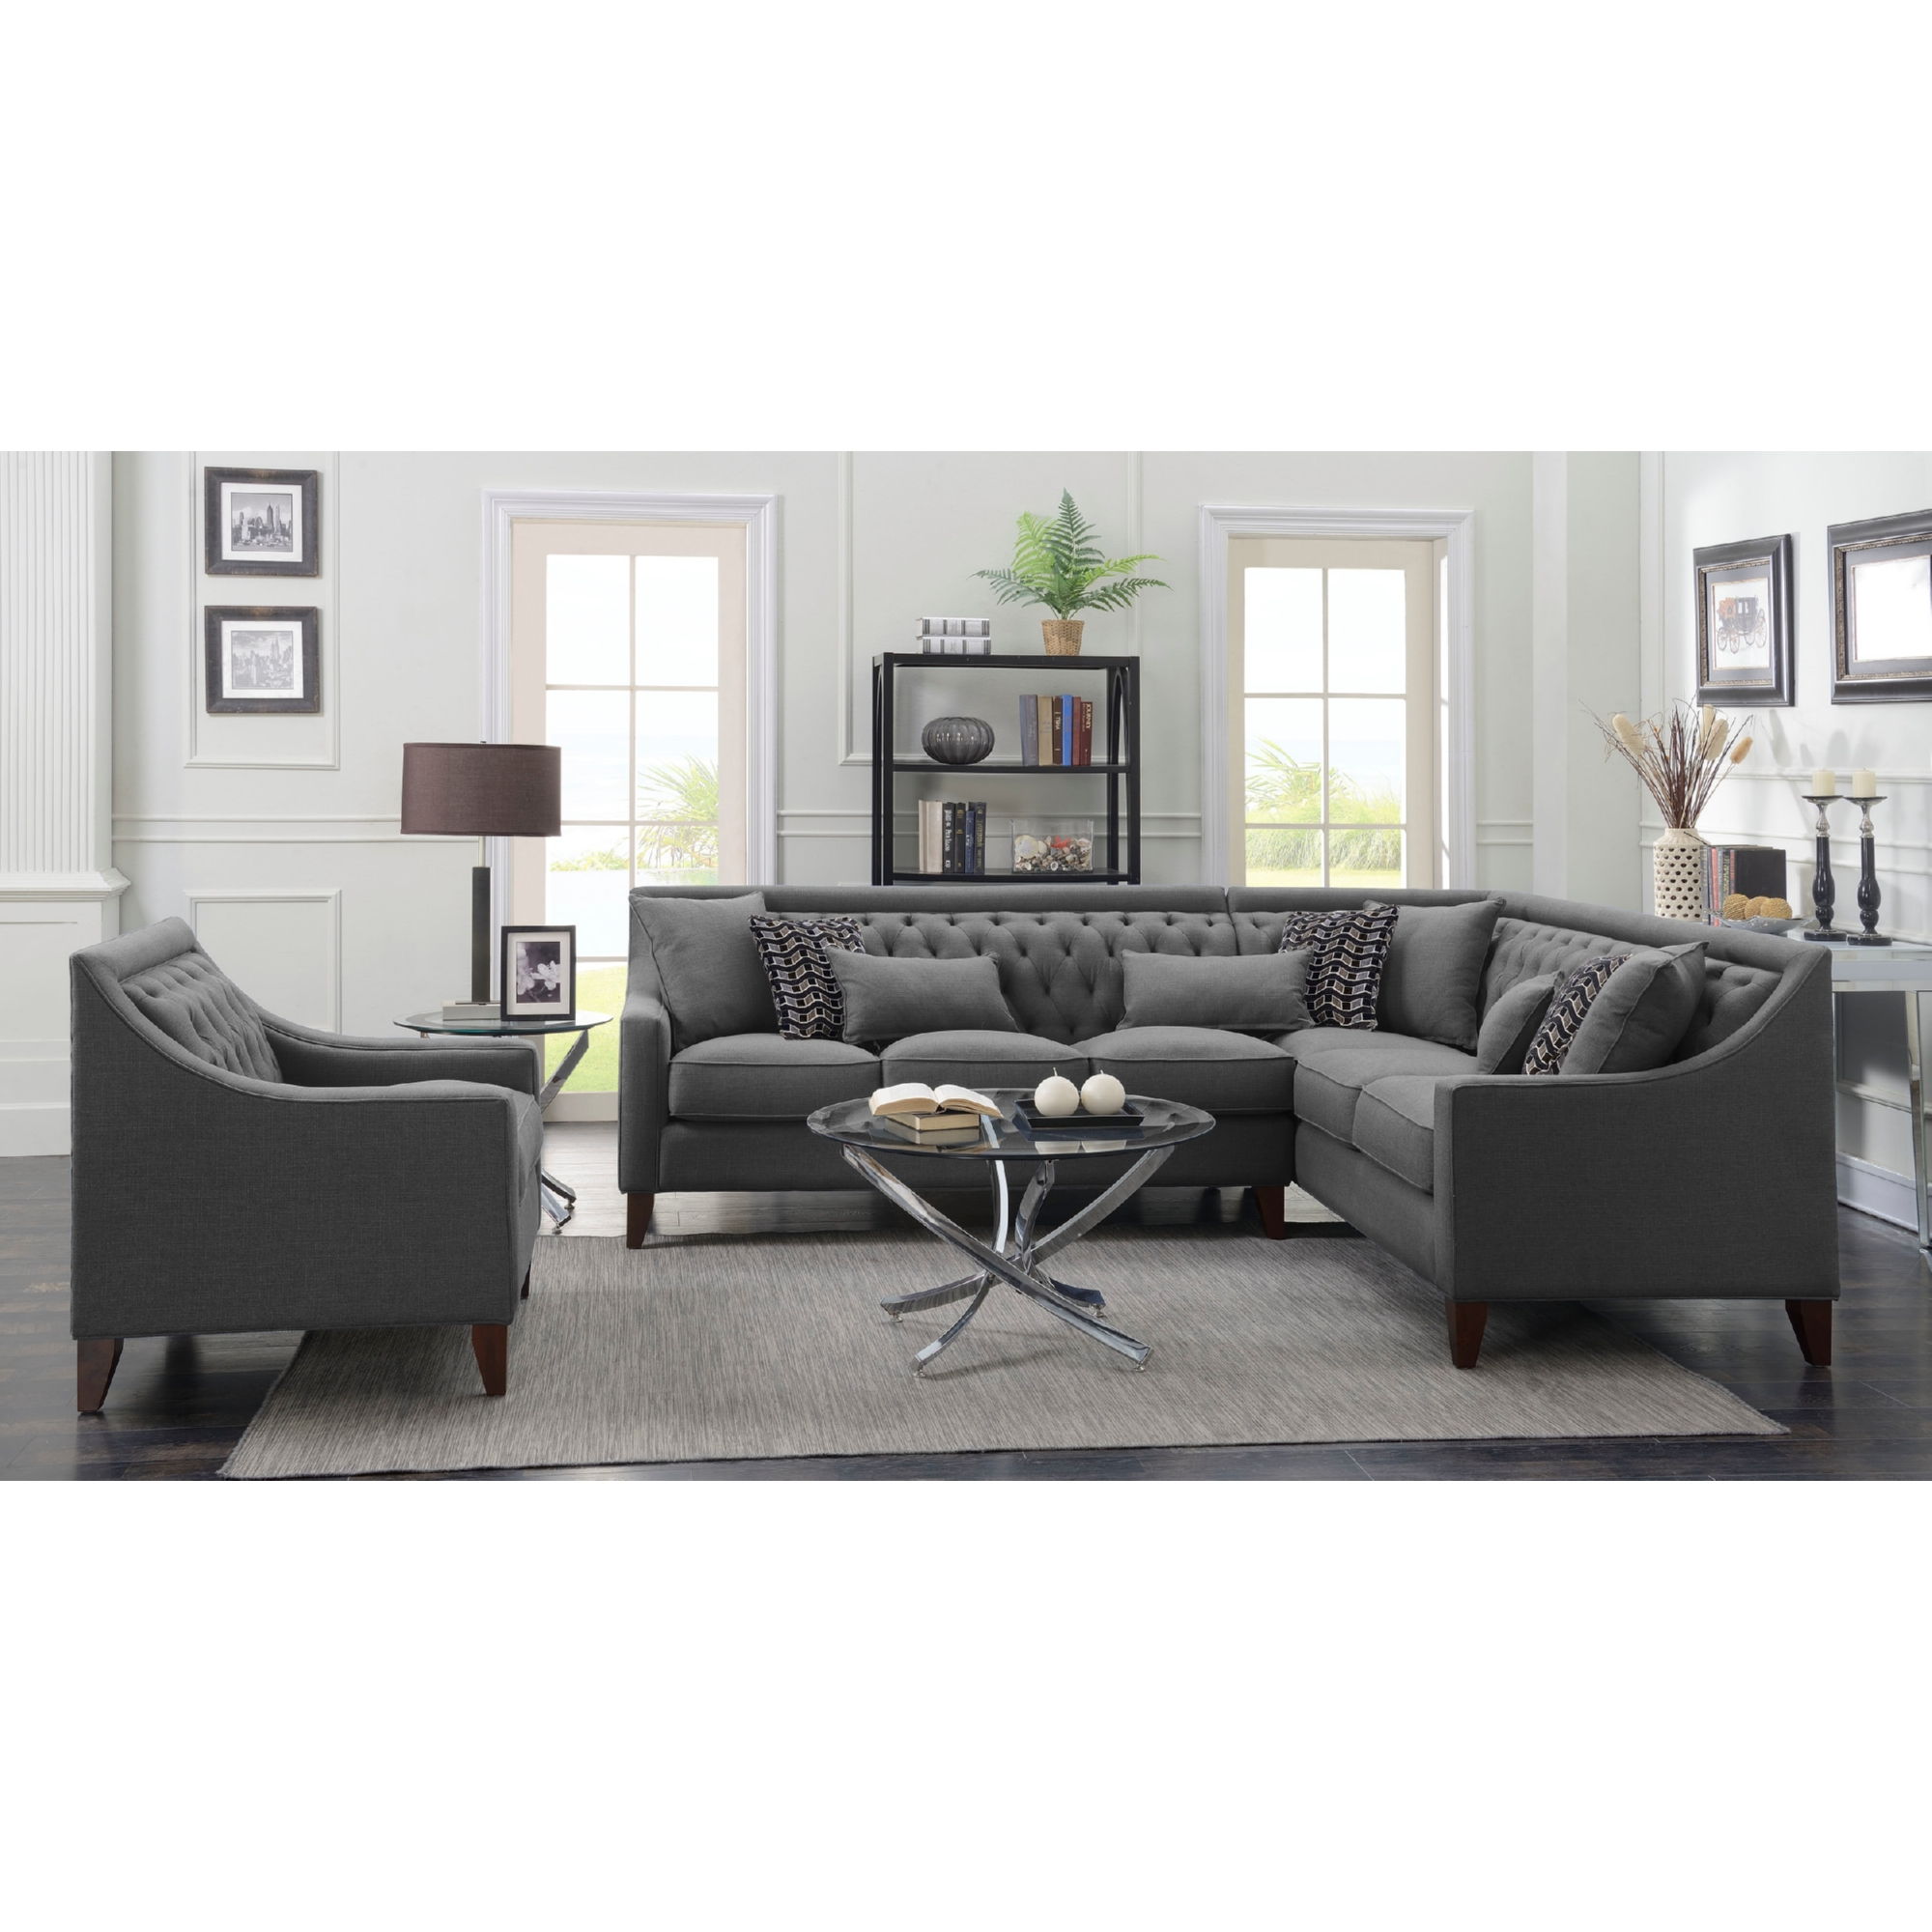 Chic Home FSA2678 DR Aberdeen Right Sectional Sofa in Grey Linen